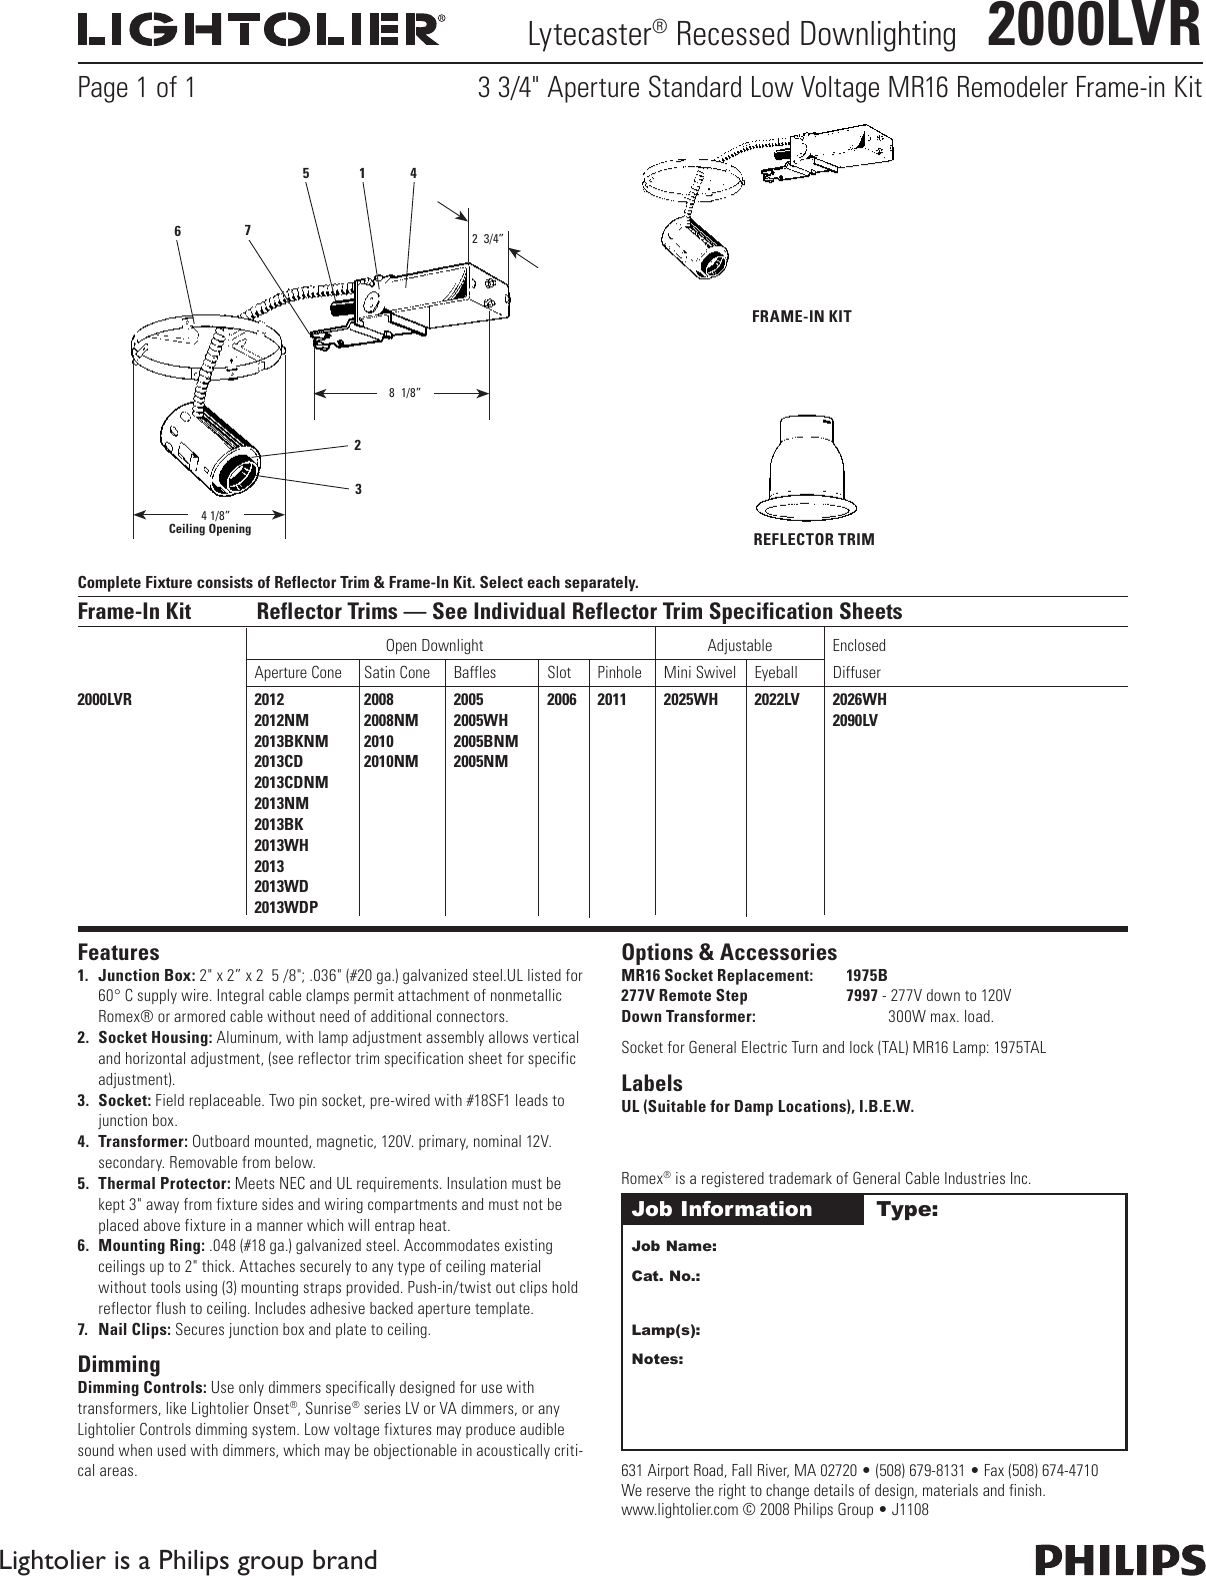 Lightolier Onset Dimmer Wiring Diagram Guide And Troubleshooting Diagrams Rh 28 Shareplm De Controls Switch